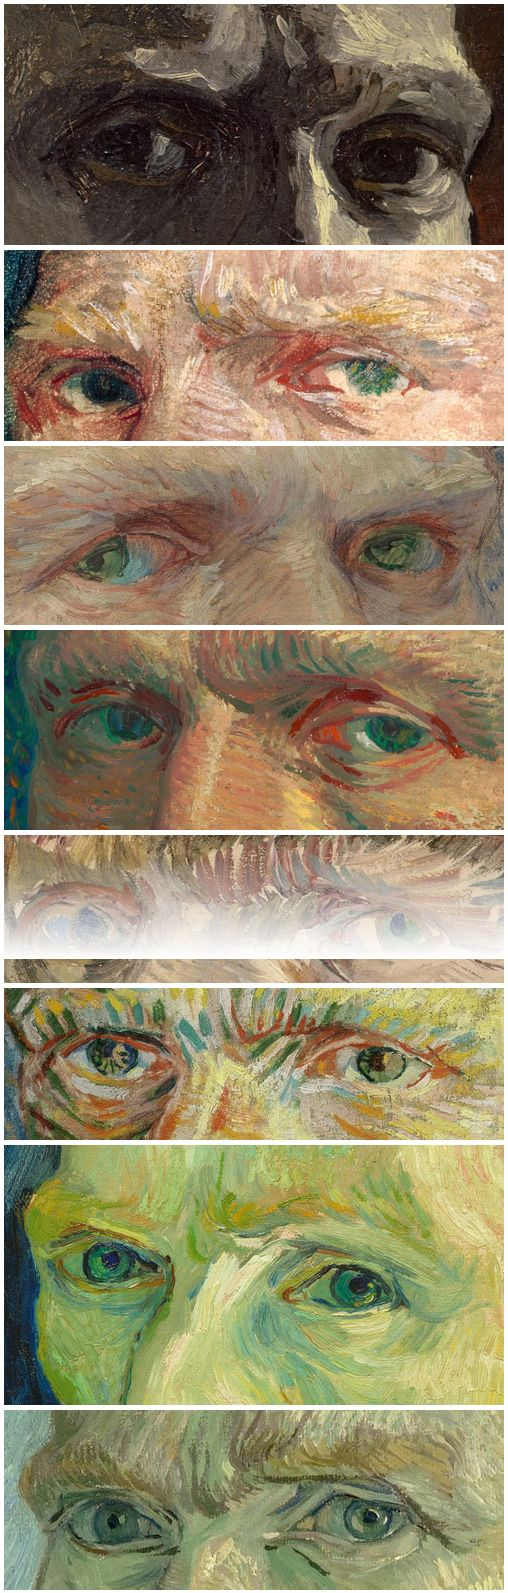 Les yeux de Vincent van Gogh: Self Portraits,  1886-1889 ✏✏✏✏✏✏✏✏✏✏✏✏✏✏✏✏  ARTS ET PEINTURES - ARTS AND PAINTINGS  ☞ https://fr.pinterest.com/JeanfbJf/pin-peintres-painters-index/ ══════════════════════  Gᴀʙʏ﹣Fᴇ́ᴇʀɪᴇ BIJOUX  ☞ https://fr.pinterest.com/JeanfbJf/pin-index-bijoux-de-gaby-f%C3%A9erie-par-barbier-j-f/ ✏✏✏✏✏✏✏✏✏✏✏✏✏✏✏✏